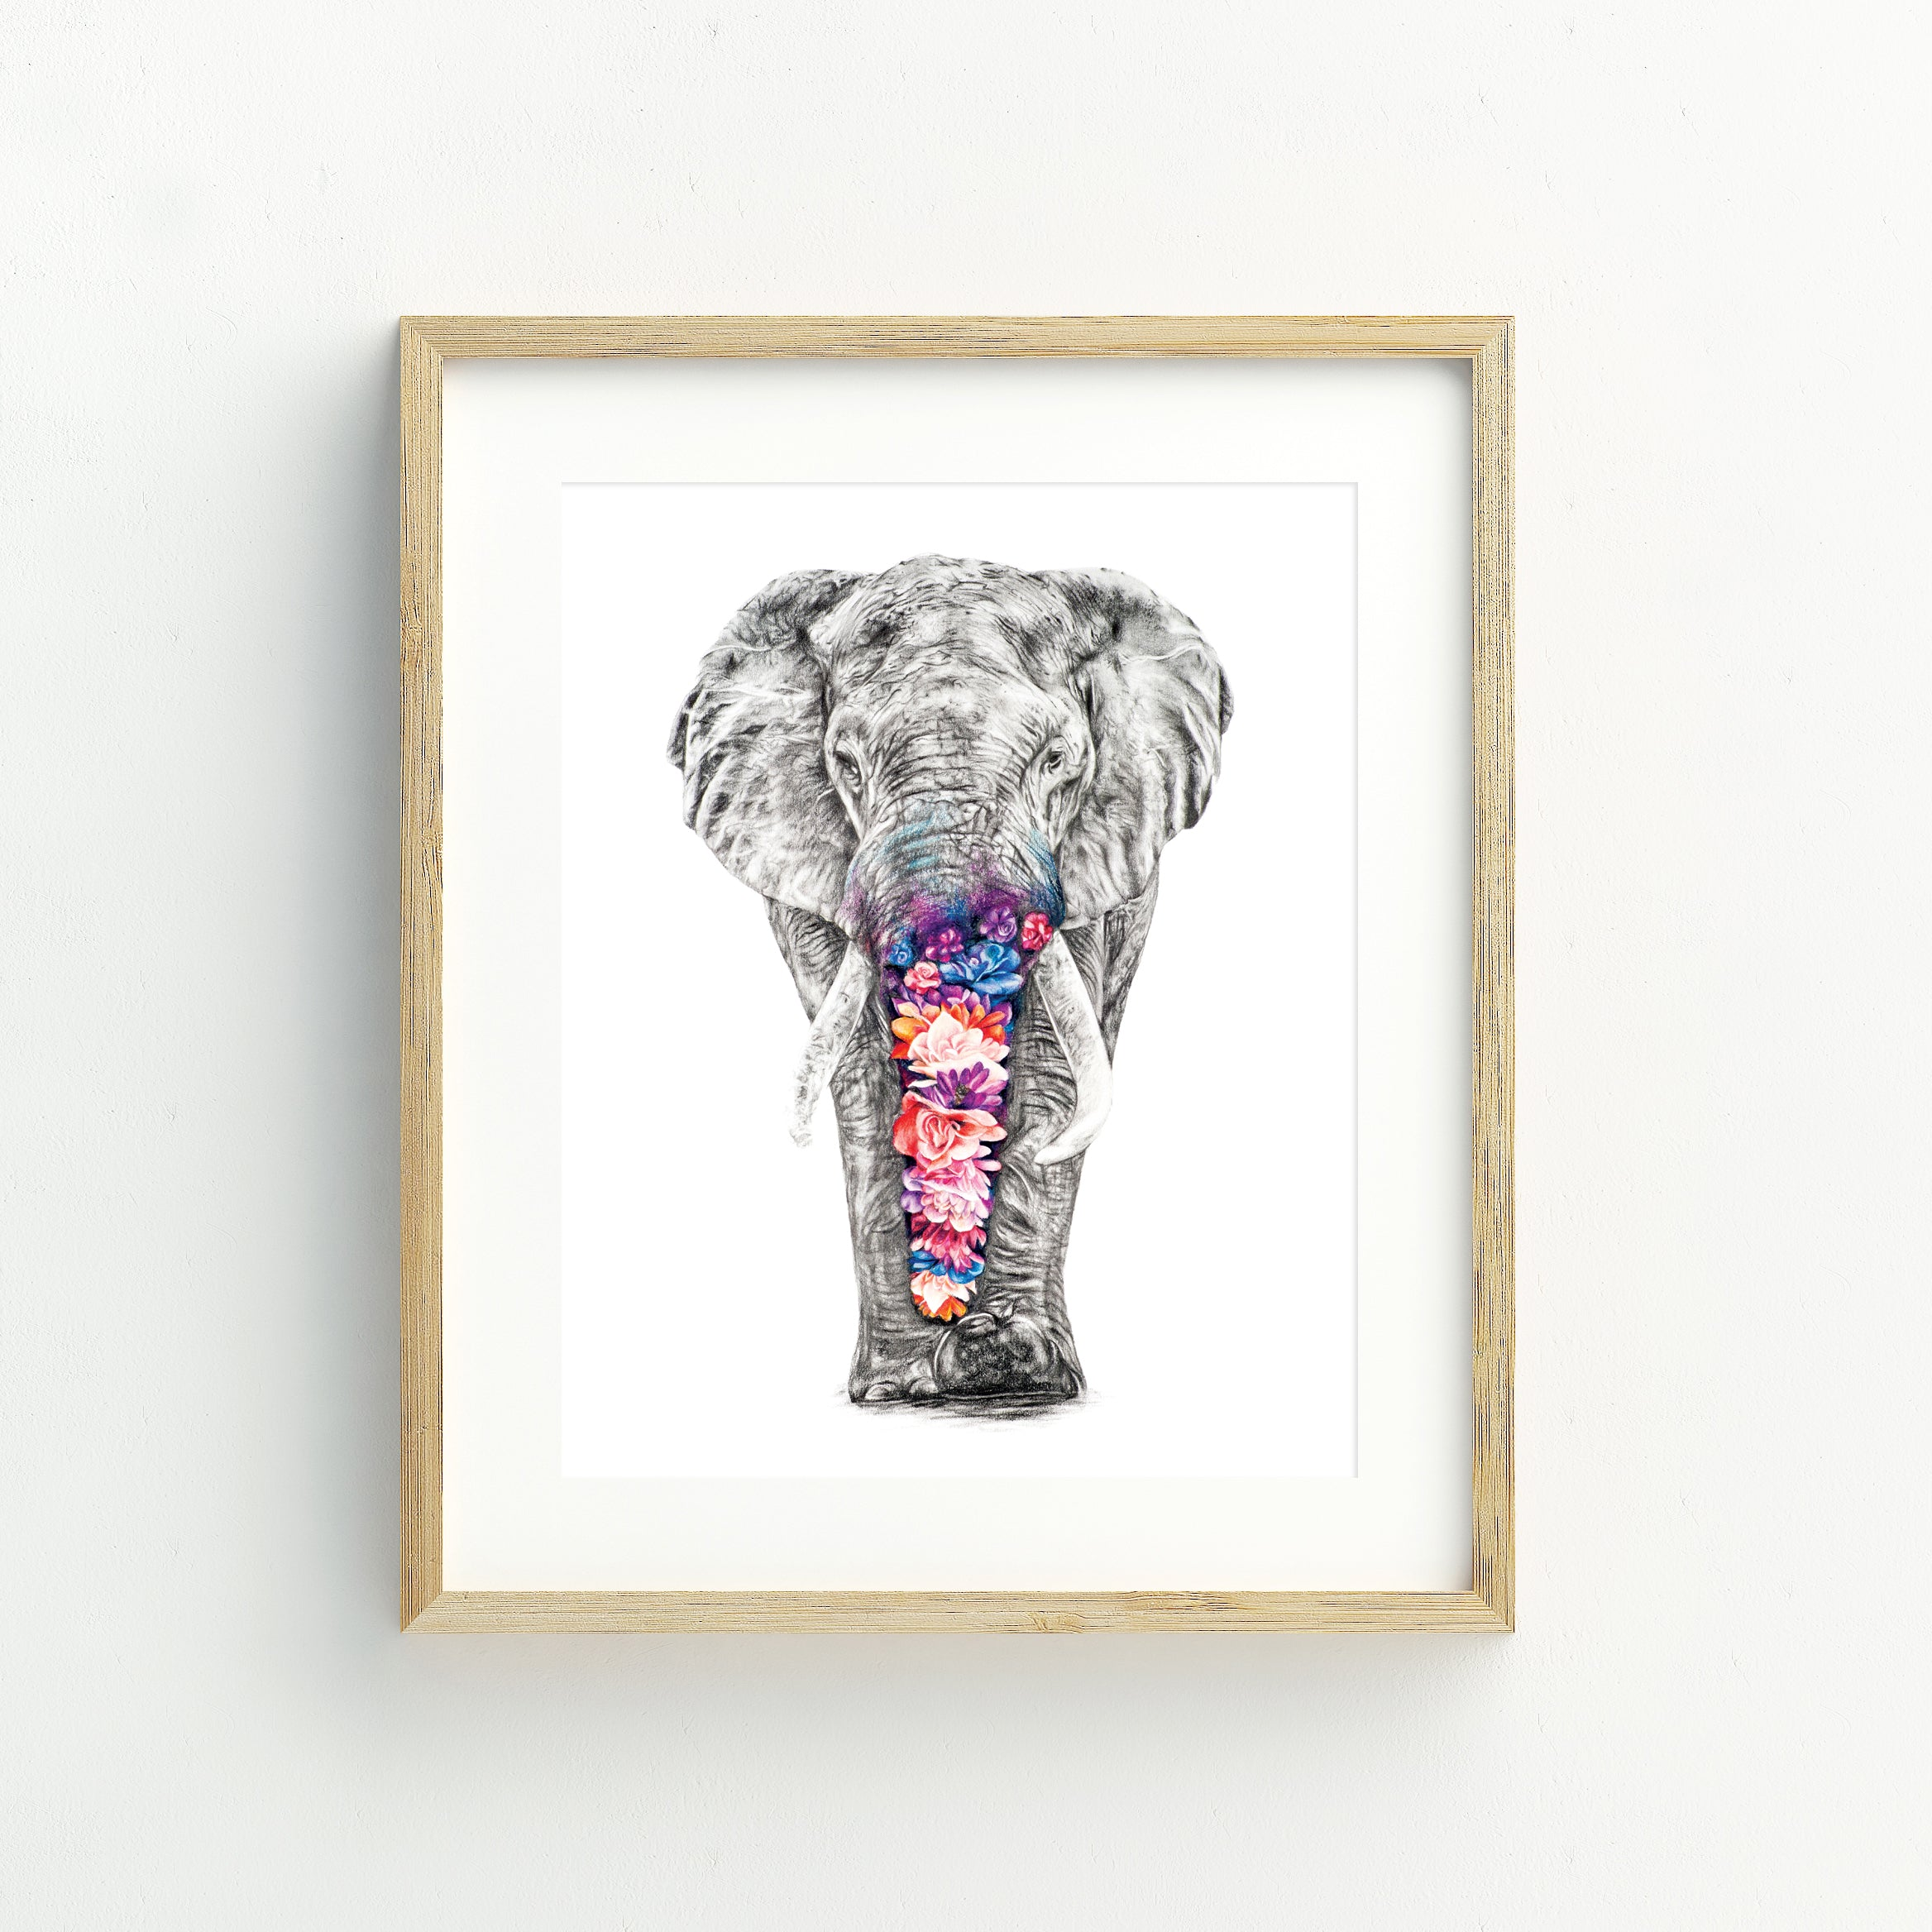 Effy the Elephant - Extra Large Print